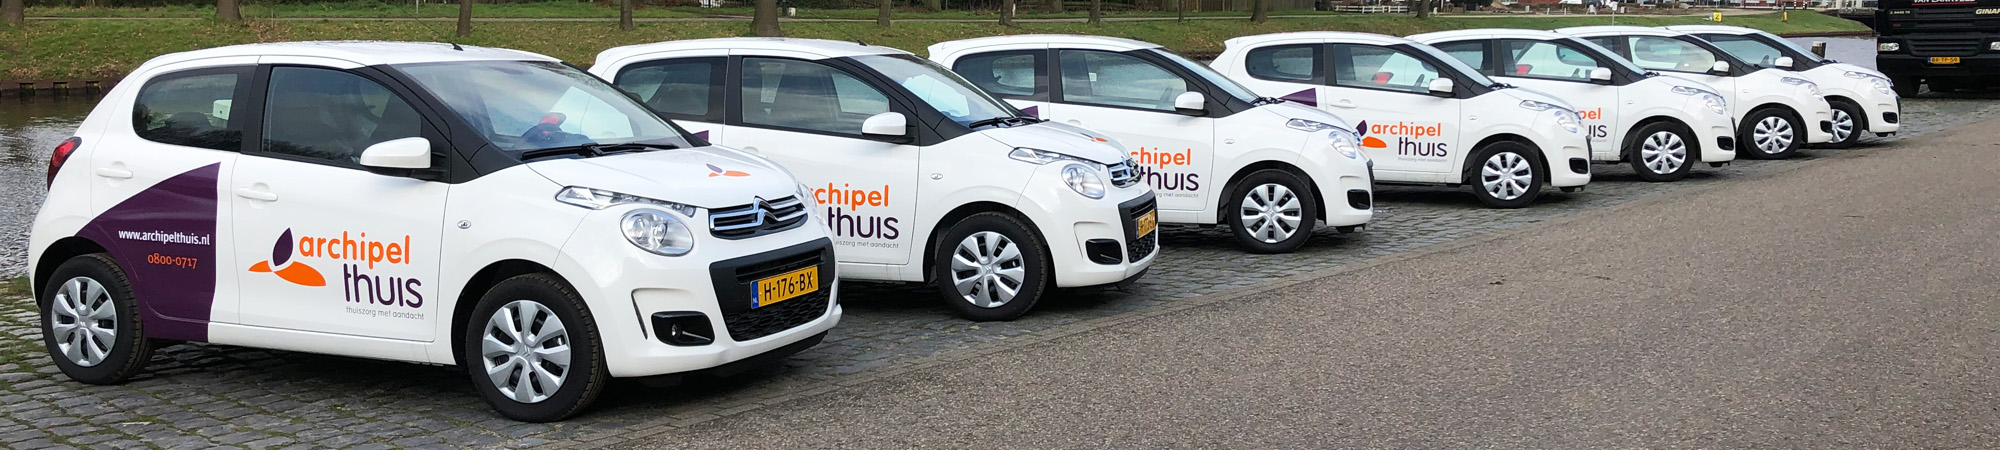 Belettering personenauto's Archipel Thuis